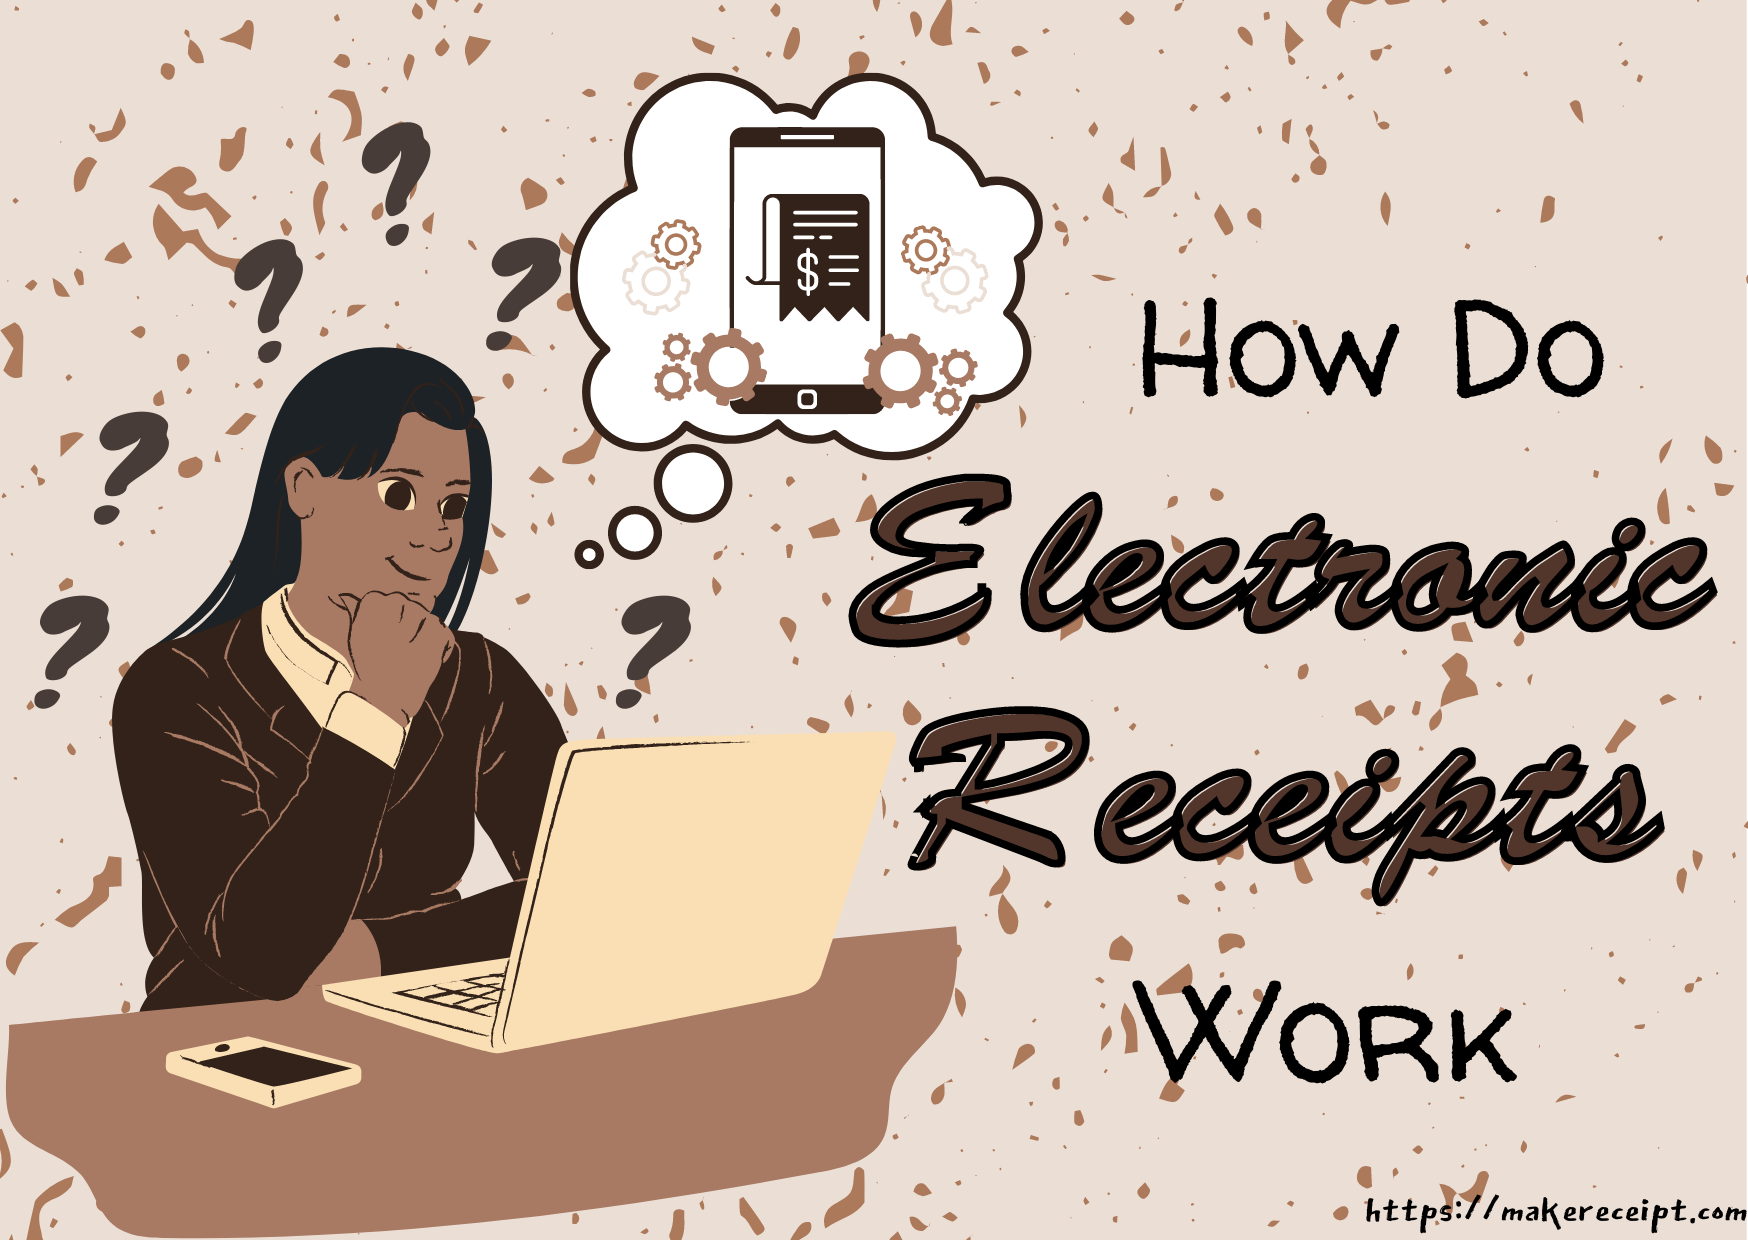 How Do Electronic Receipts Work?